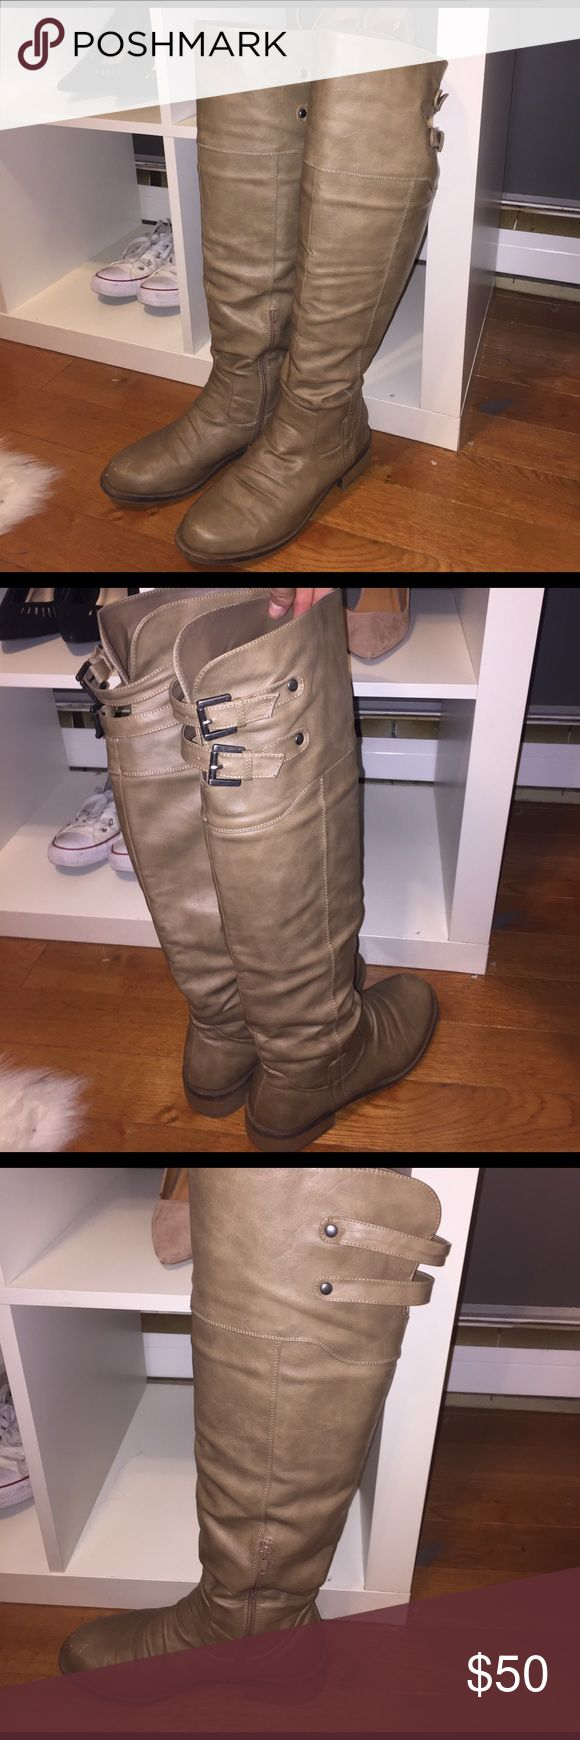 """Tan Knee High Riding Boots Tan Knee High Boots   Size 9   adjustable Buckles on calve area - good for people with larger calves.  Small scuff on the right toe as seen in pics. Purchased from Venus Catalog. Inside zip at mid-calf 1.5"""" heel 16"""" calf circumference Polyurethane. Imported Shoes Over the Knee Boots"""